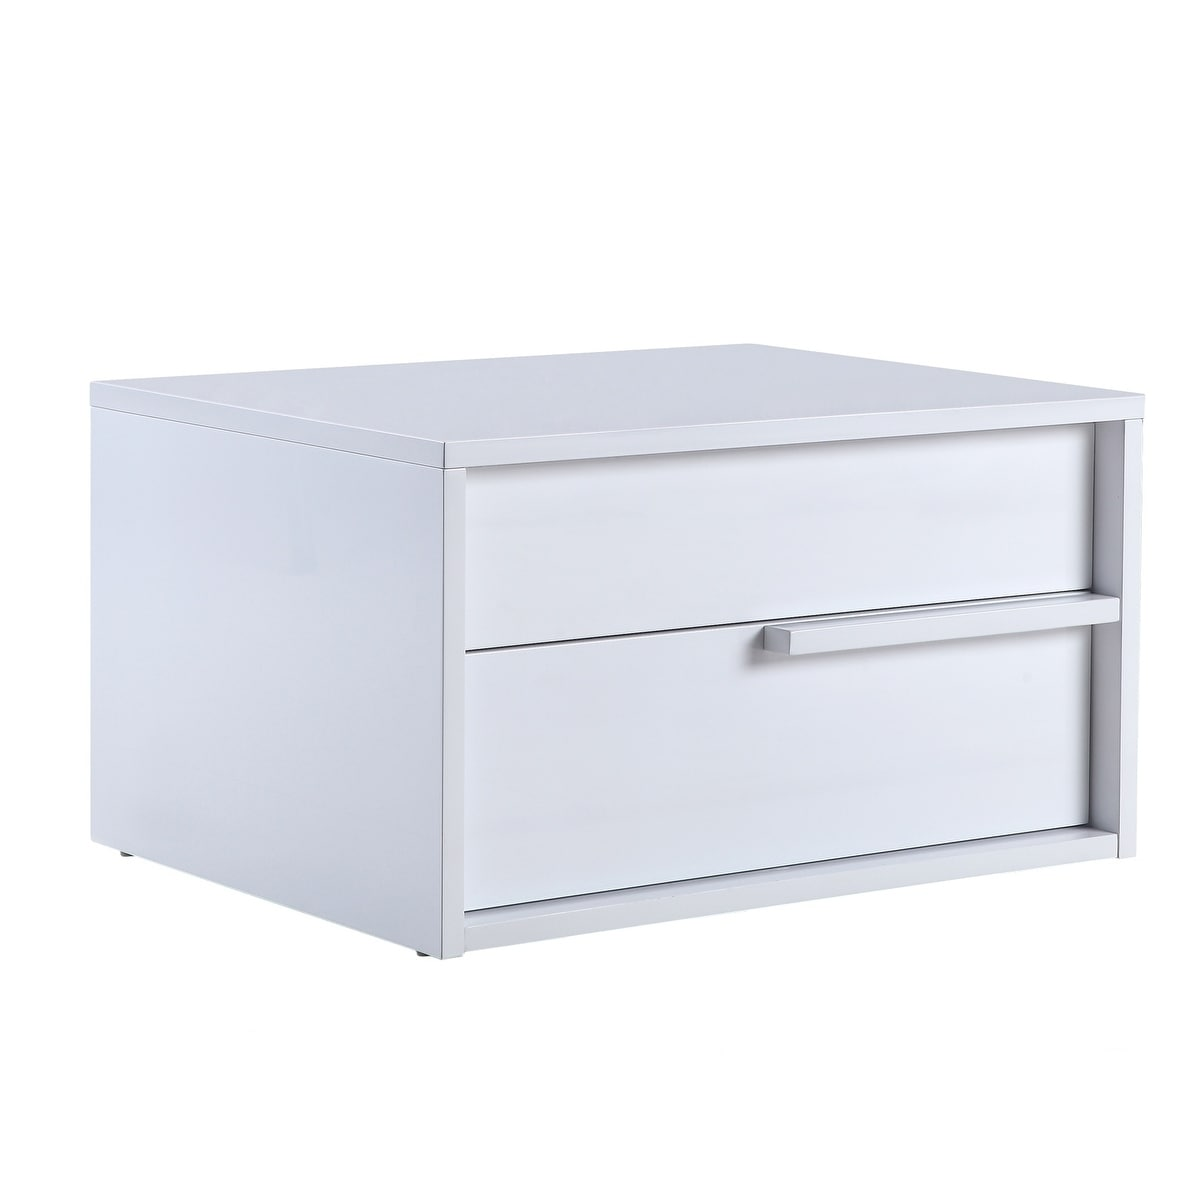 Casabianca Home Dolce High Gloss White Lacquer Right Side...